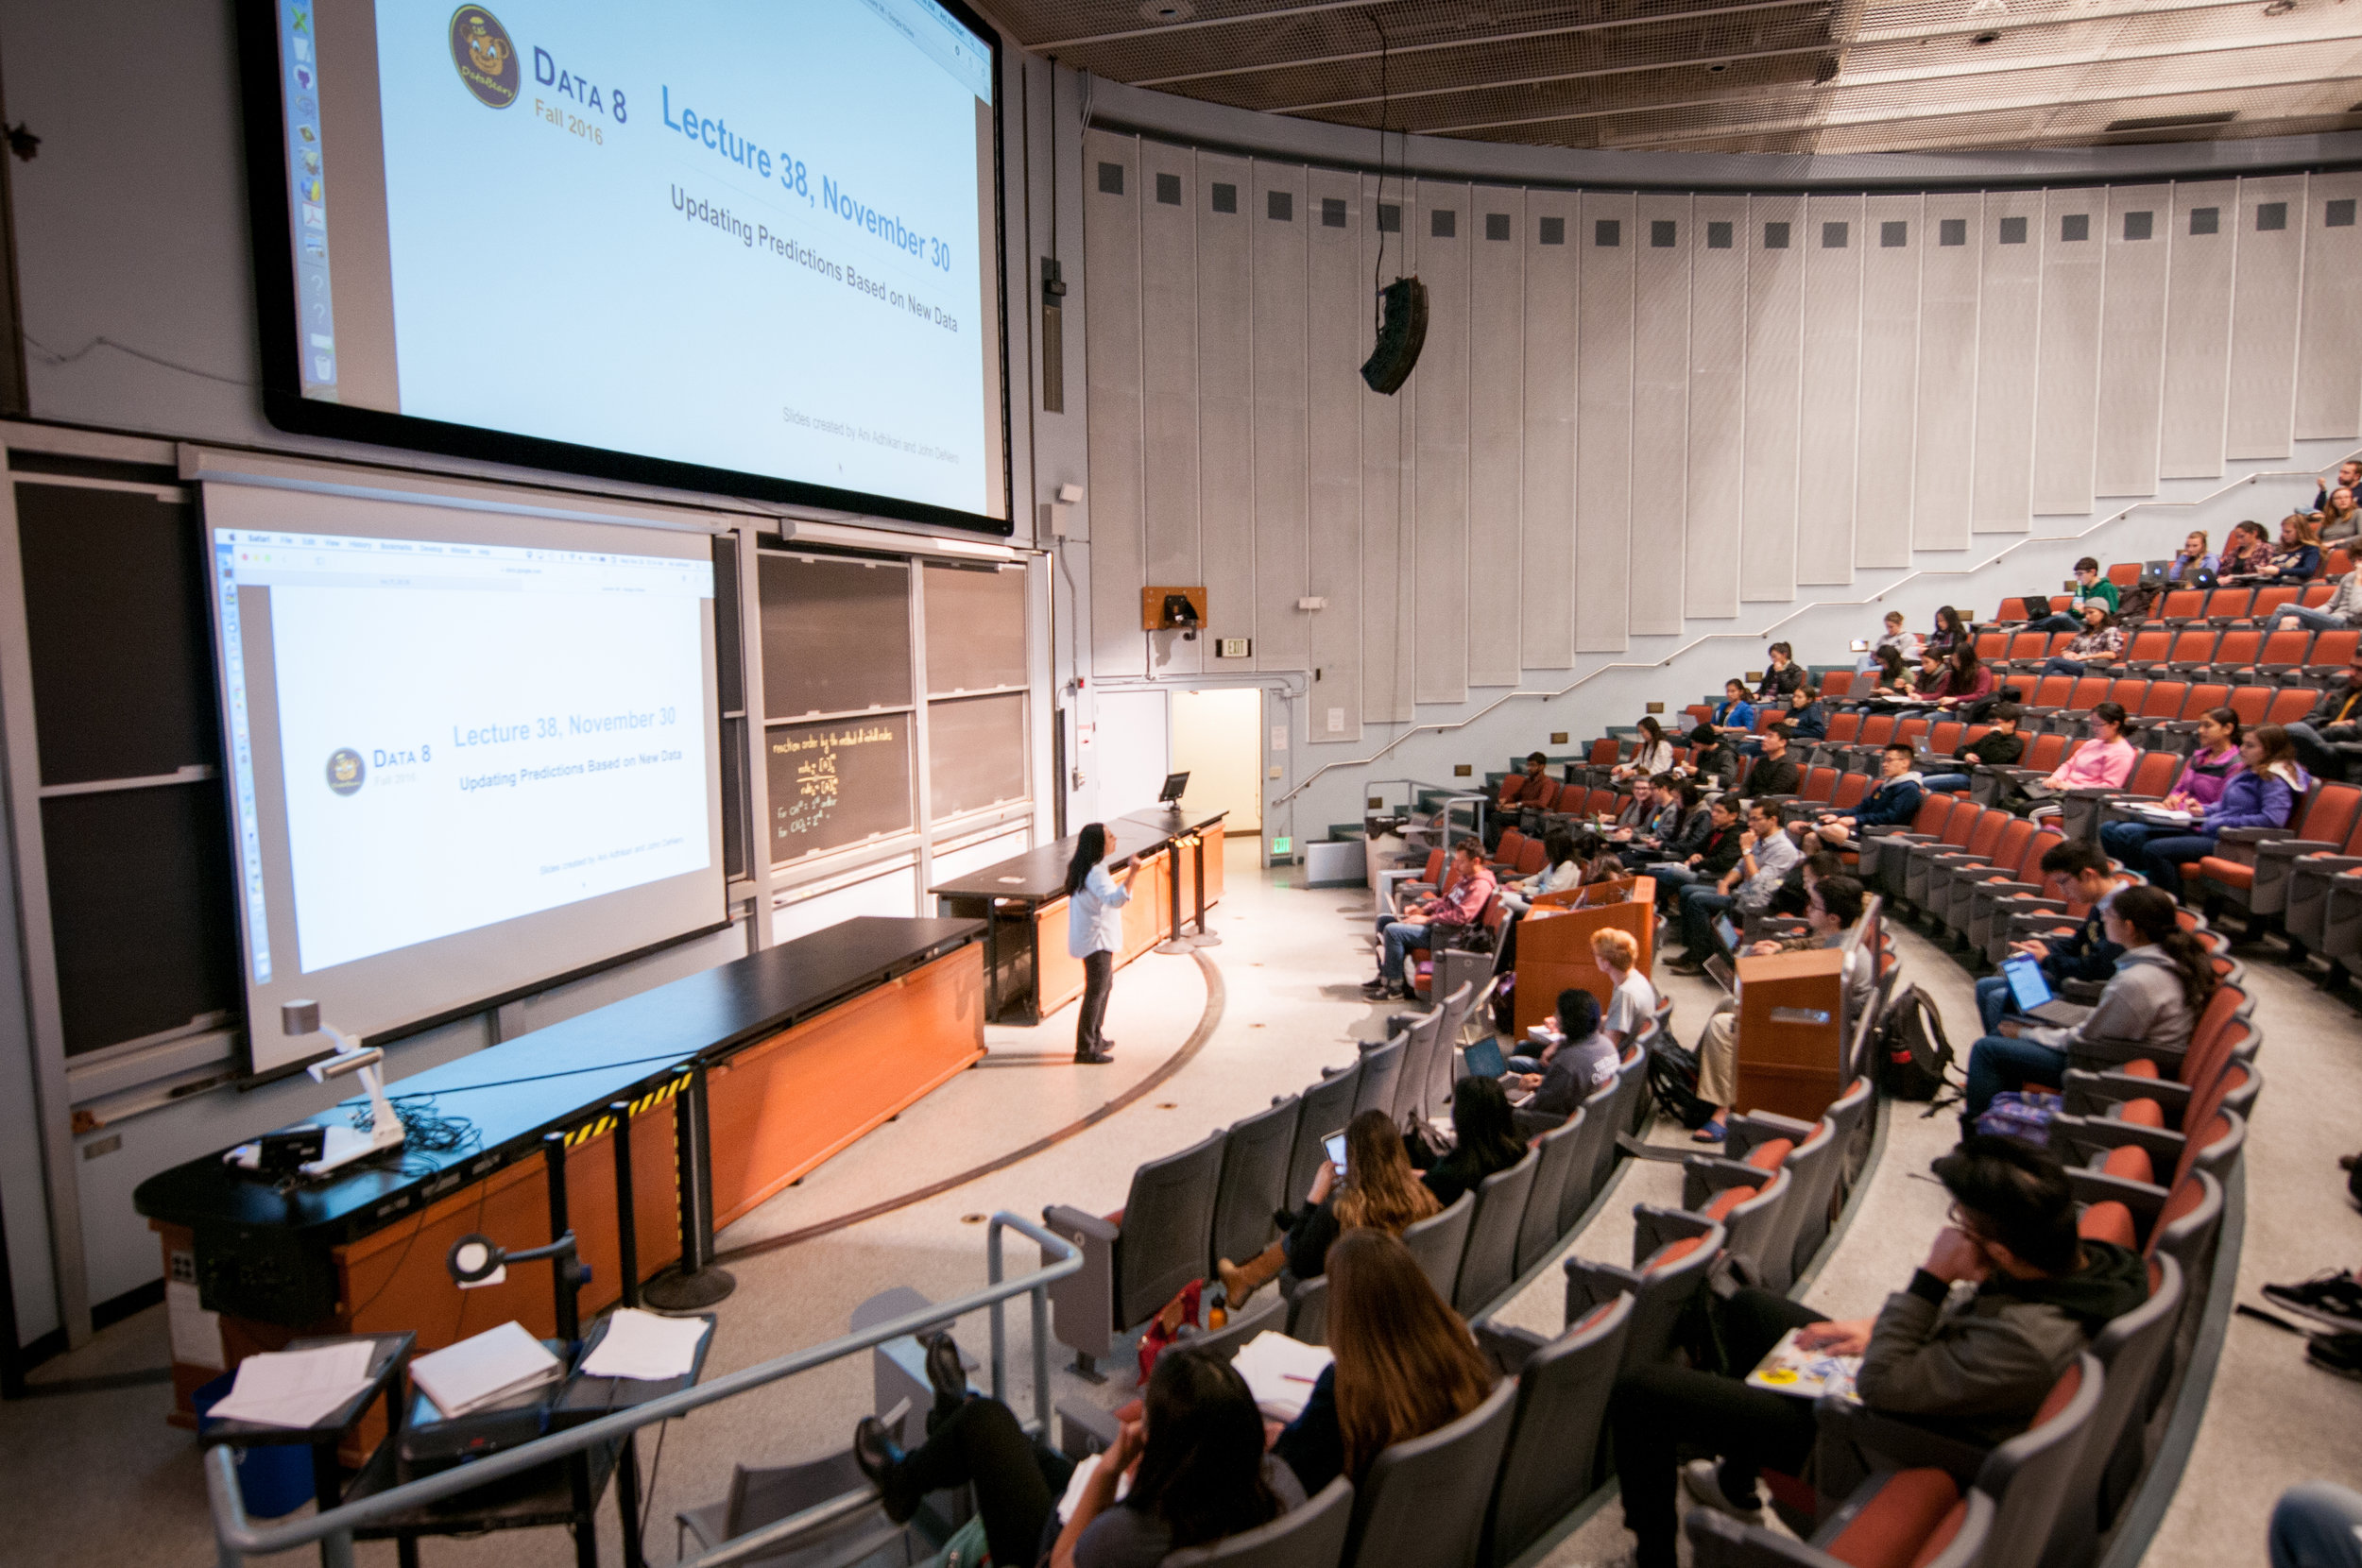 UC BerkeleyClass Pass - Attend a real lecture taught by world class UC Berkeley professors on a topic of your choice in a UC Berkeley lecture hall.